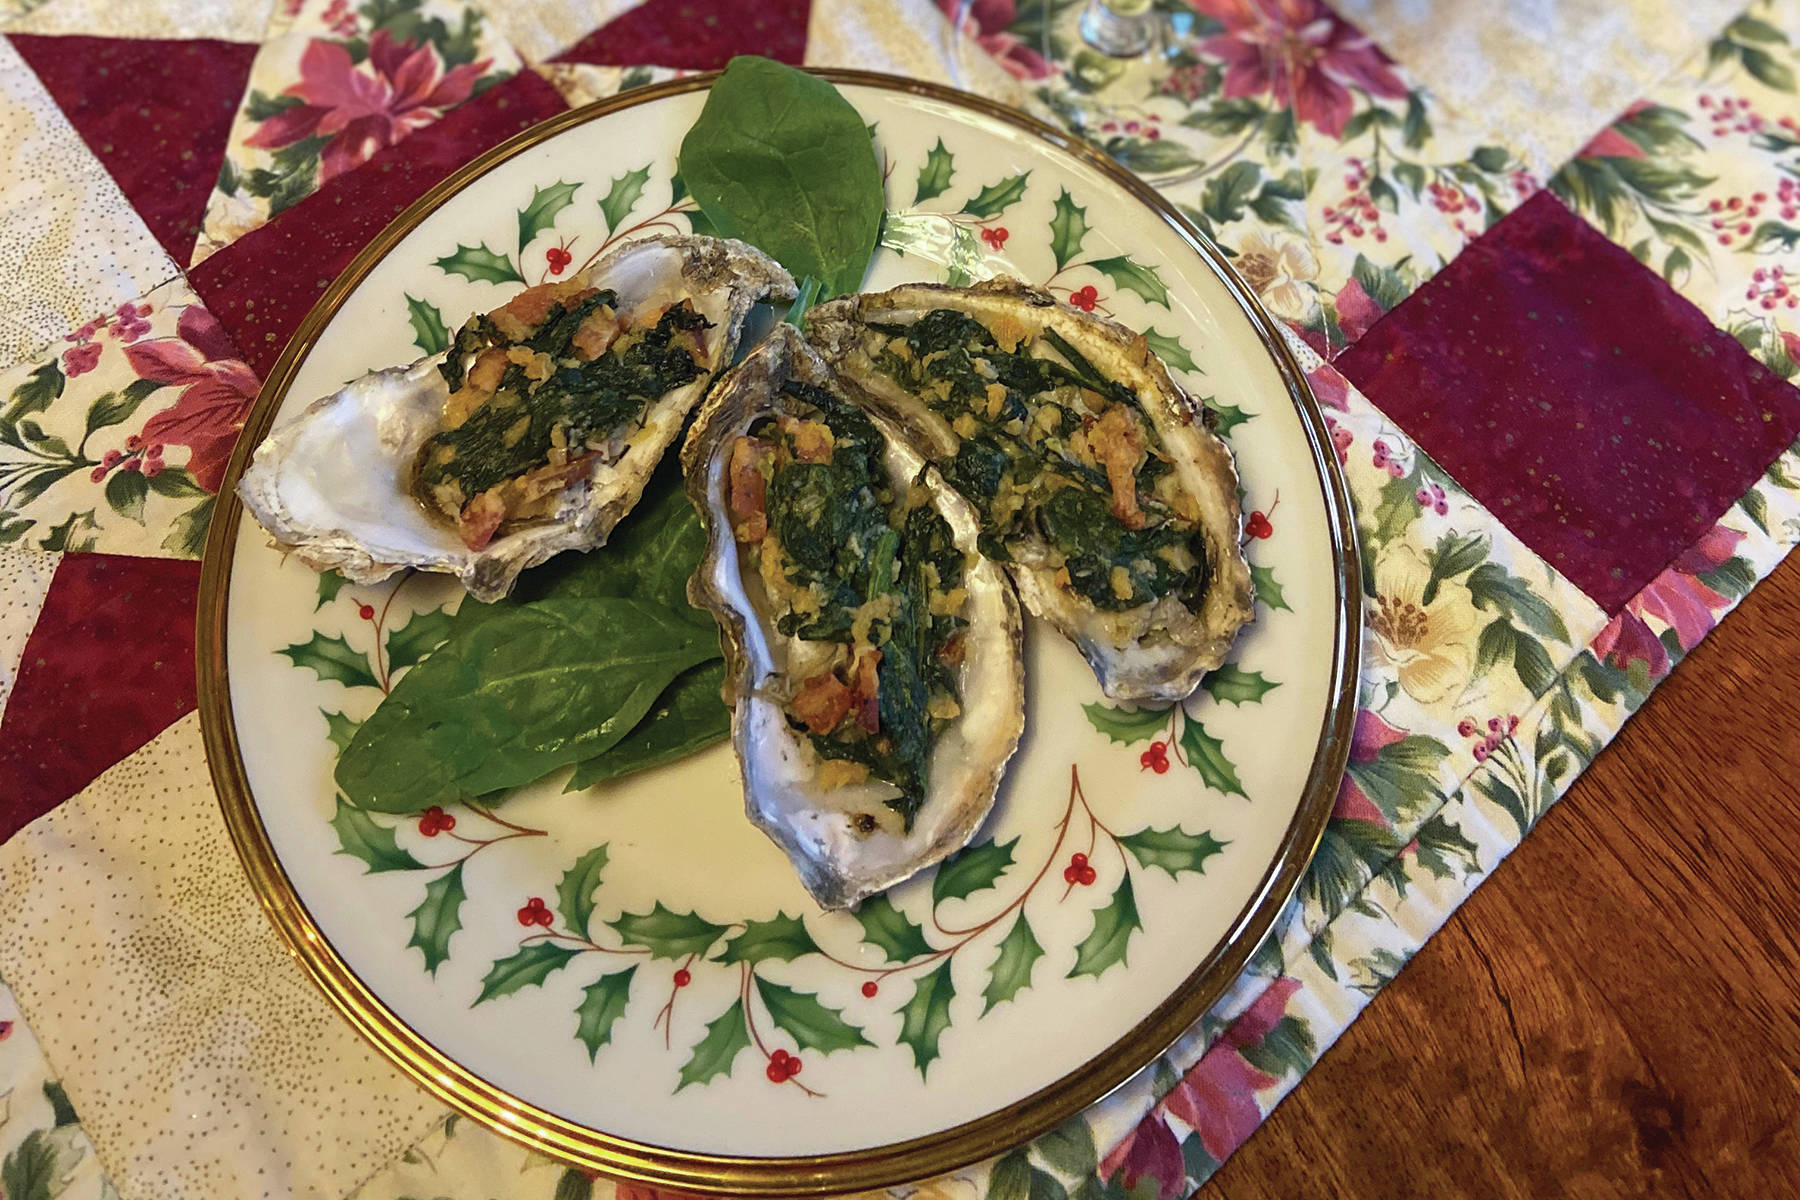 Kachemak Cuisine: Make tasty oyster dishes with fresh, local seafood